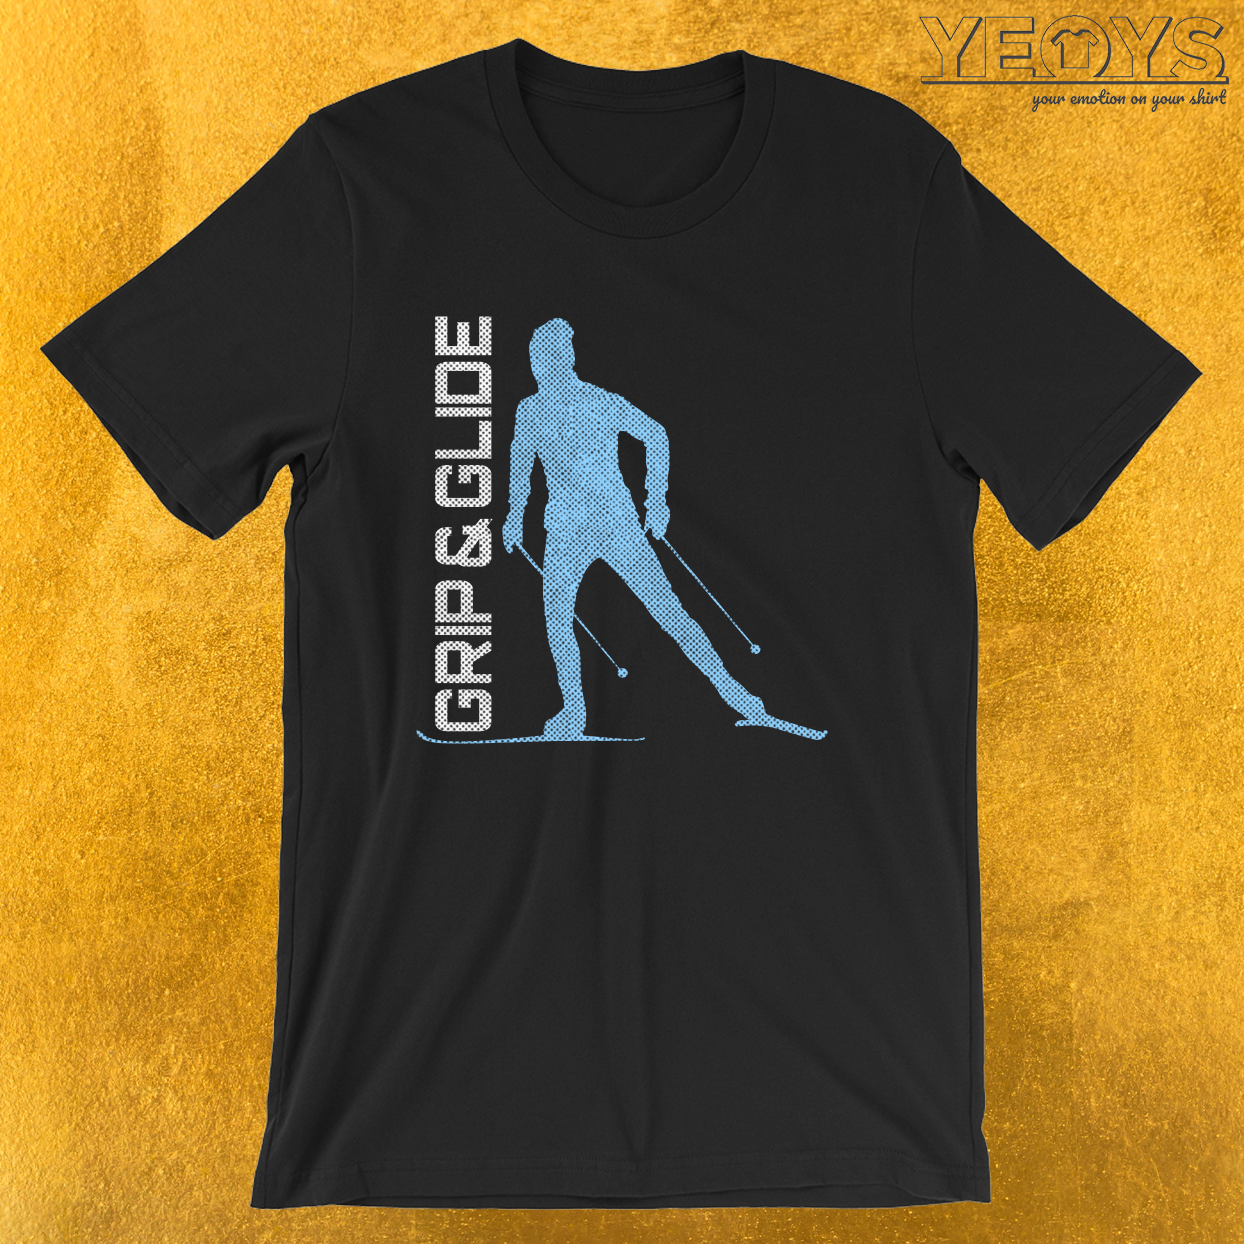 Grip & Glide – Cross Country Skiing Tee